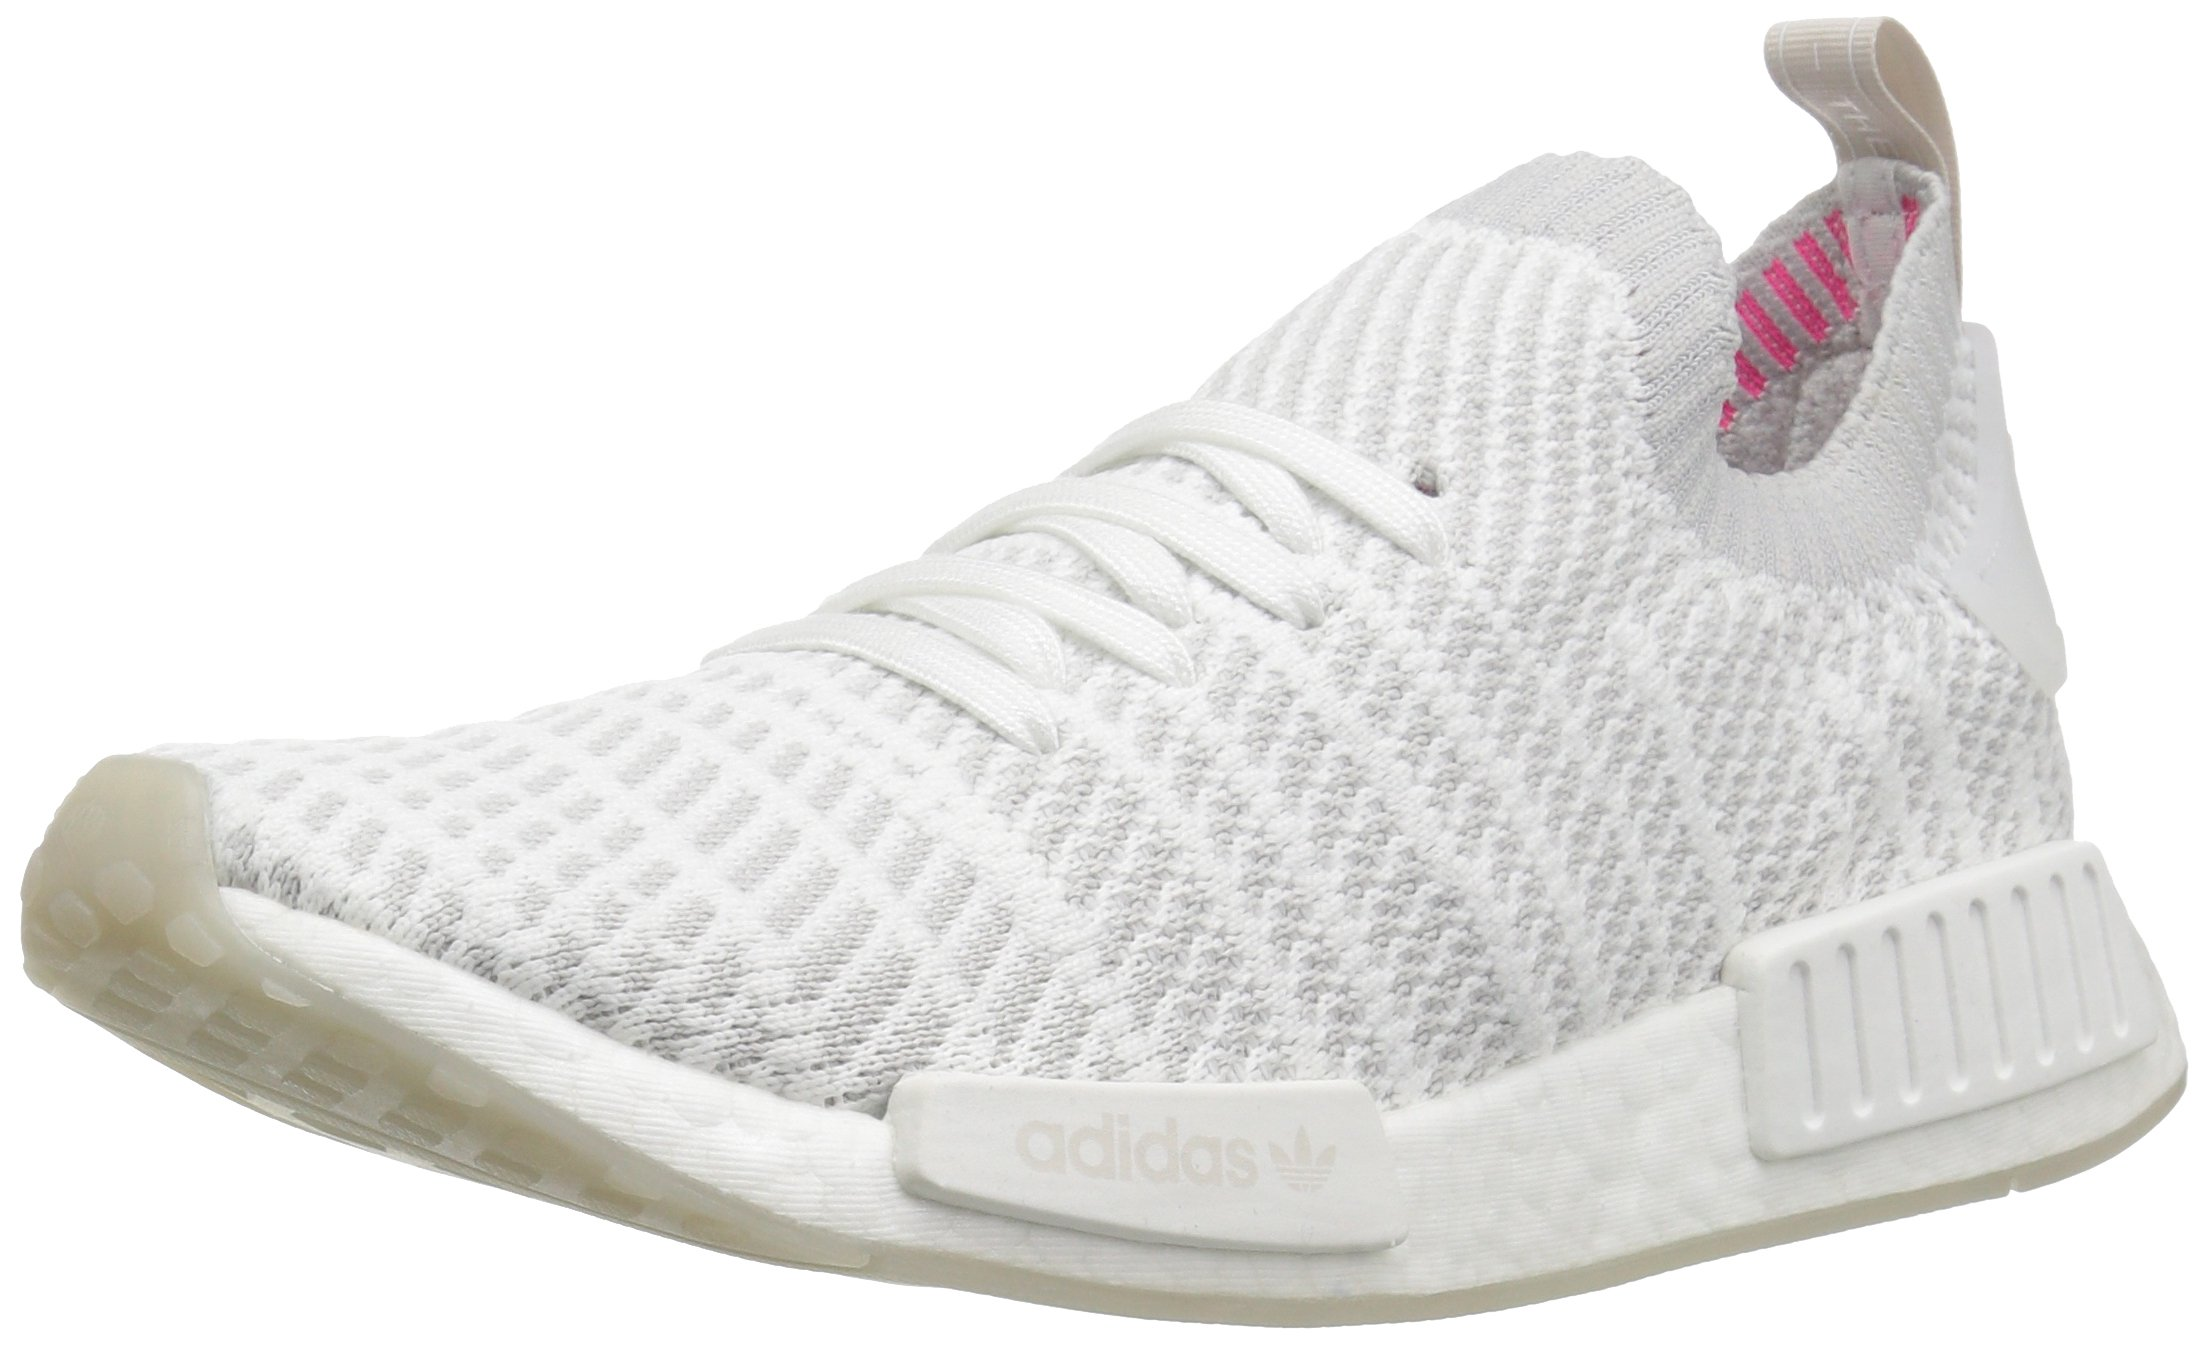 adidas Originals Men's NMD_R1 Stlt PK, White/Grey One/Soft Pink, 8.5 M US by adidas Originals